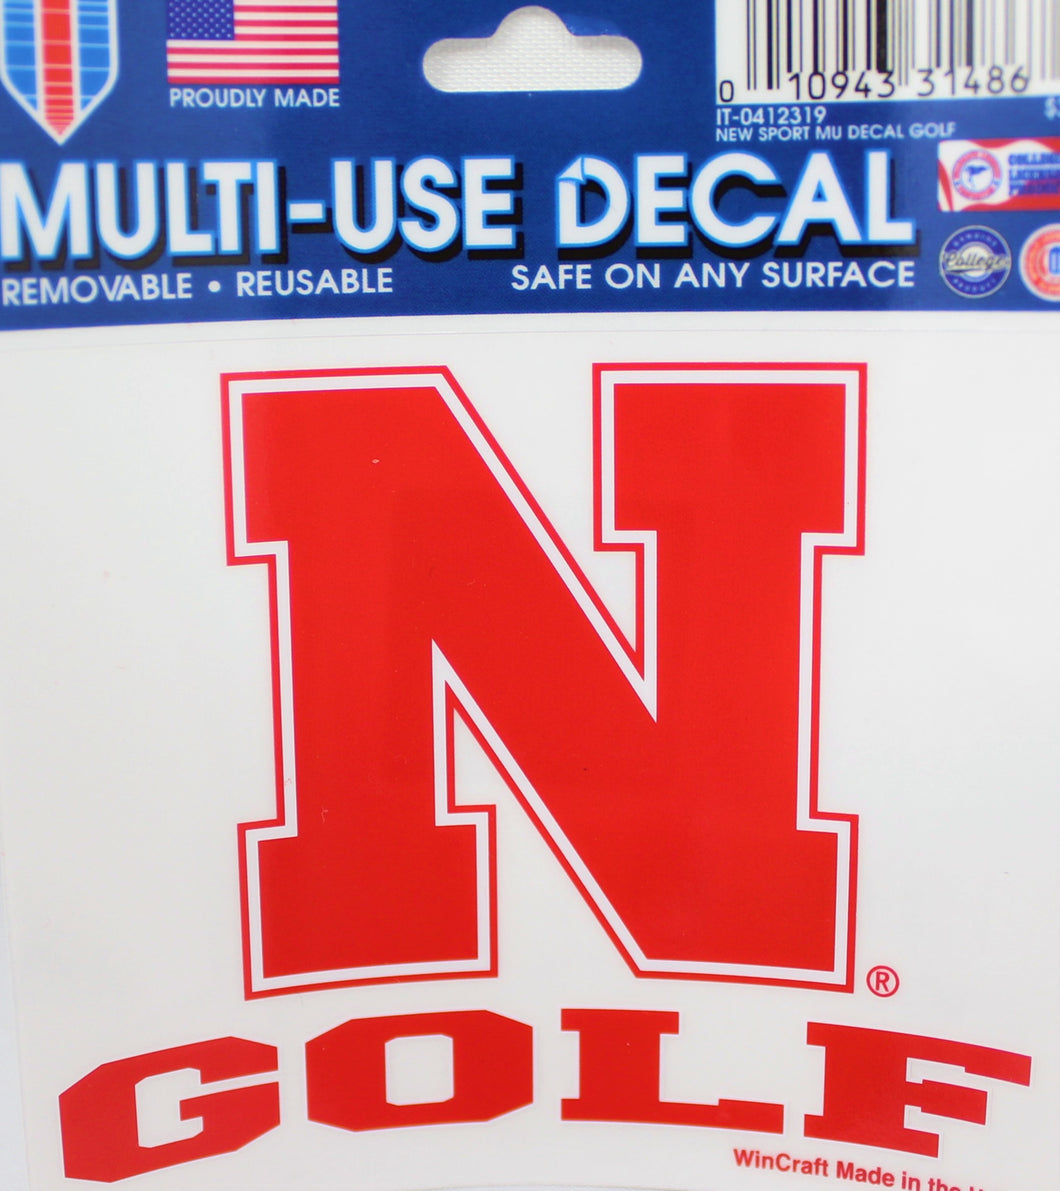 Nebraska Sport Decal Golf